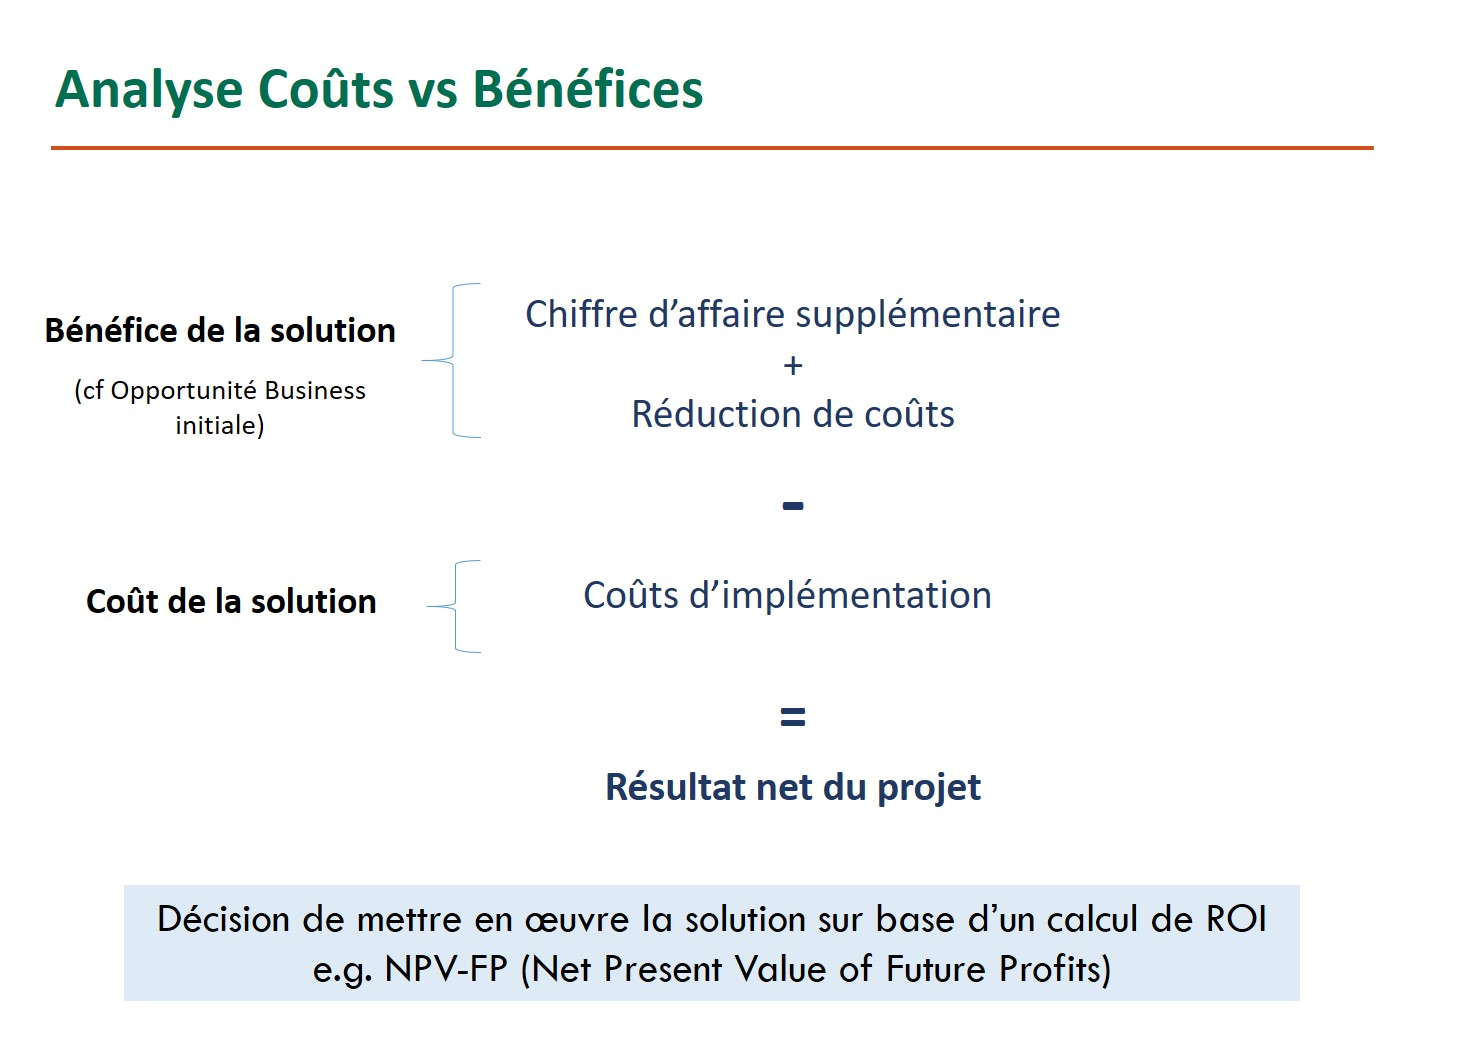 24 Analyse Couts Vs Benefices D Un Projet Lean Six Sigma